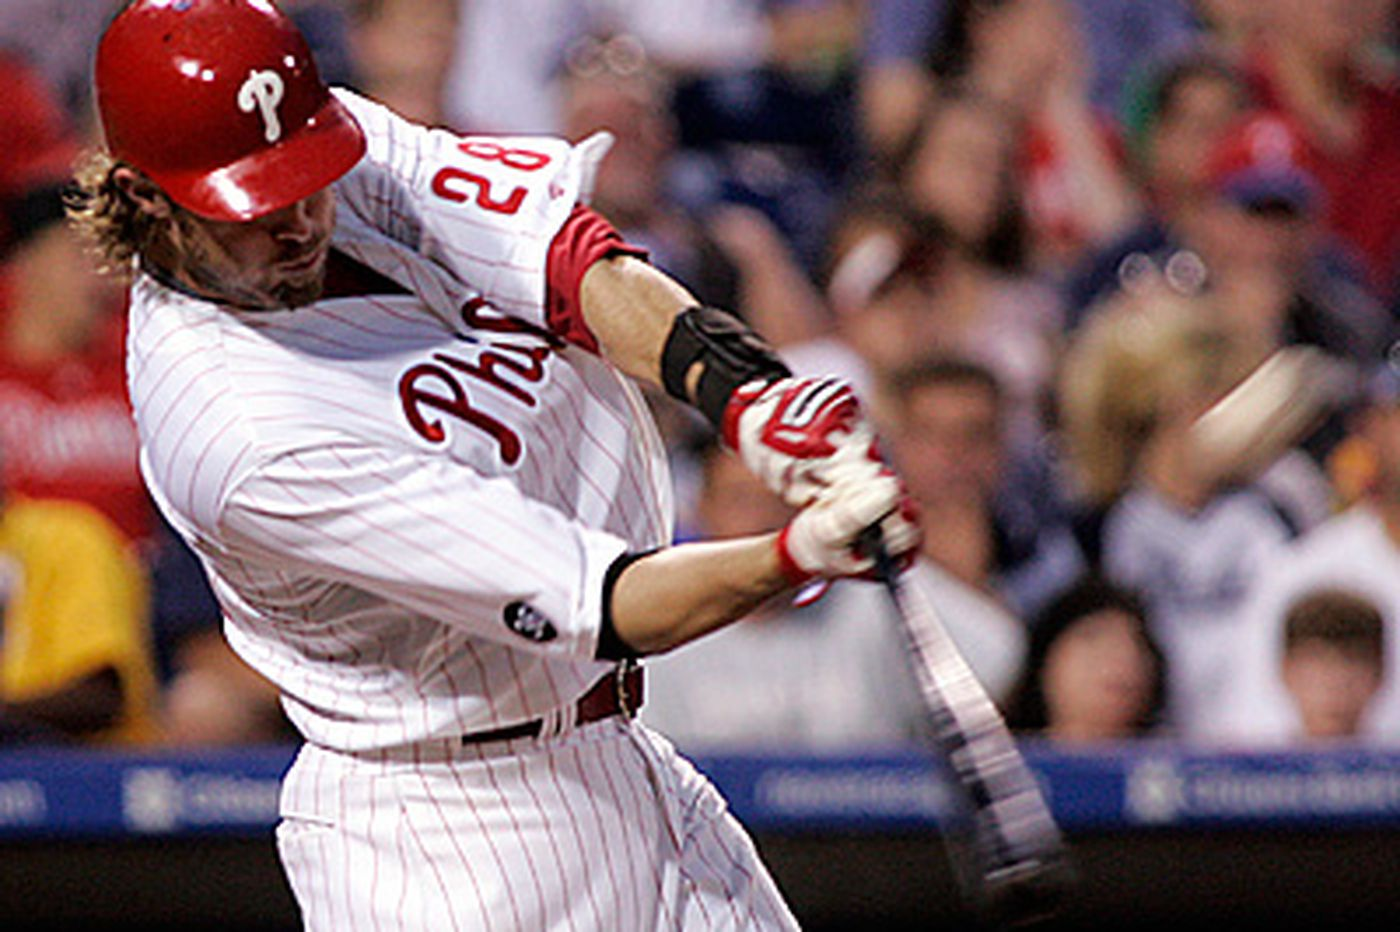 Moyer turns back clock as Phillies beat Padres